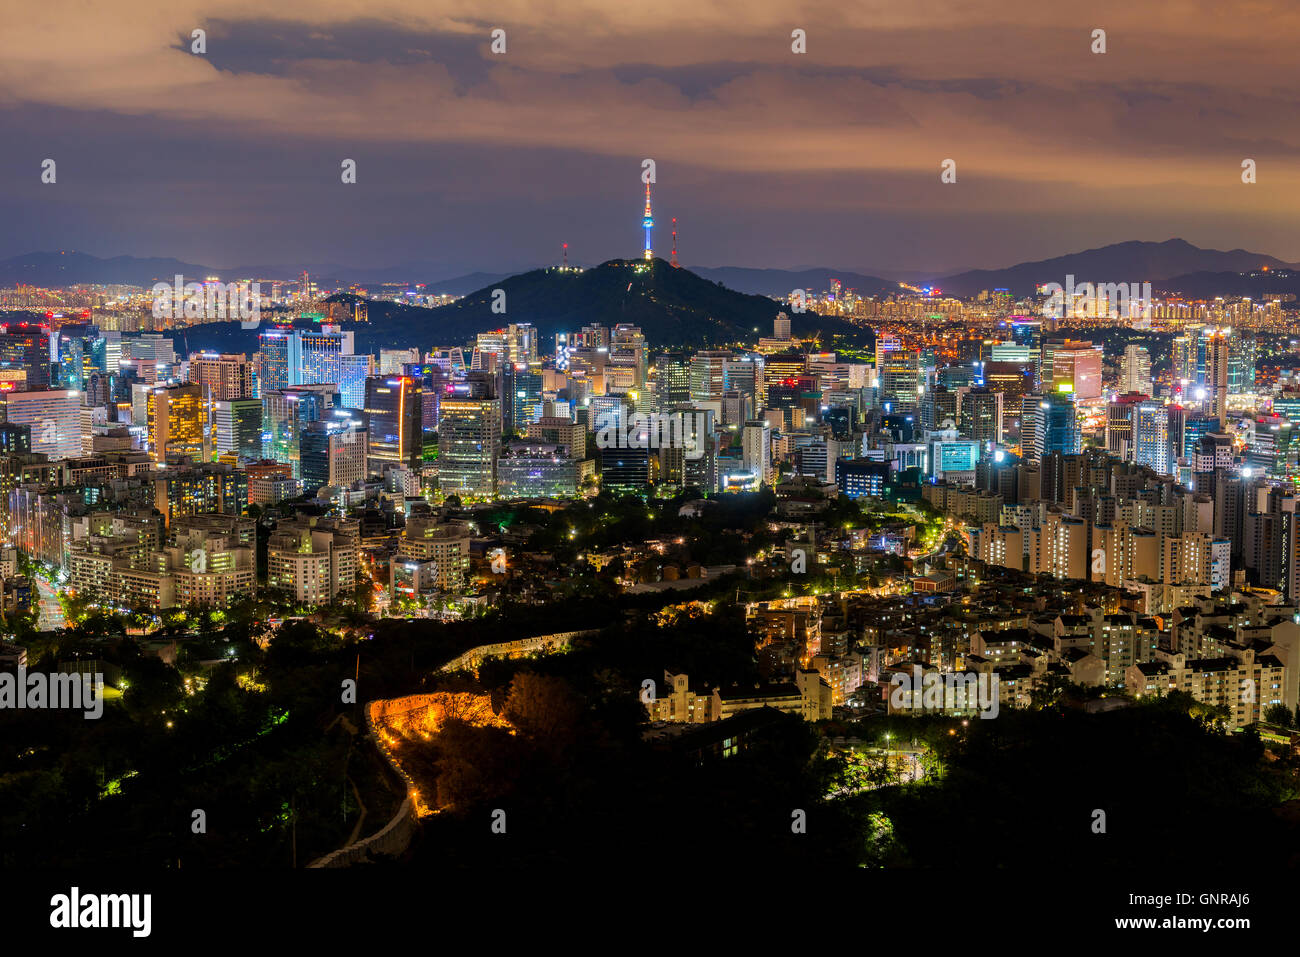 Korea,Seoul at night, South Korea city skyline. - Stock Image